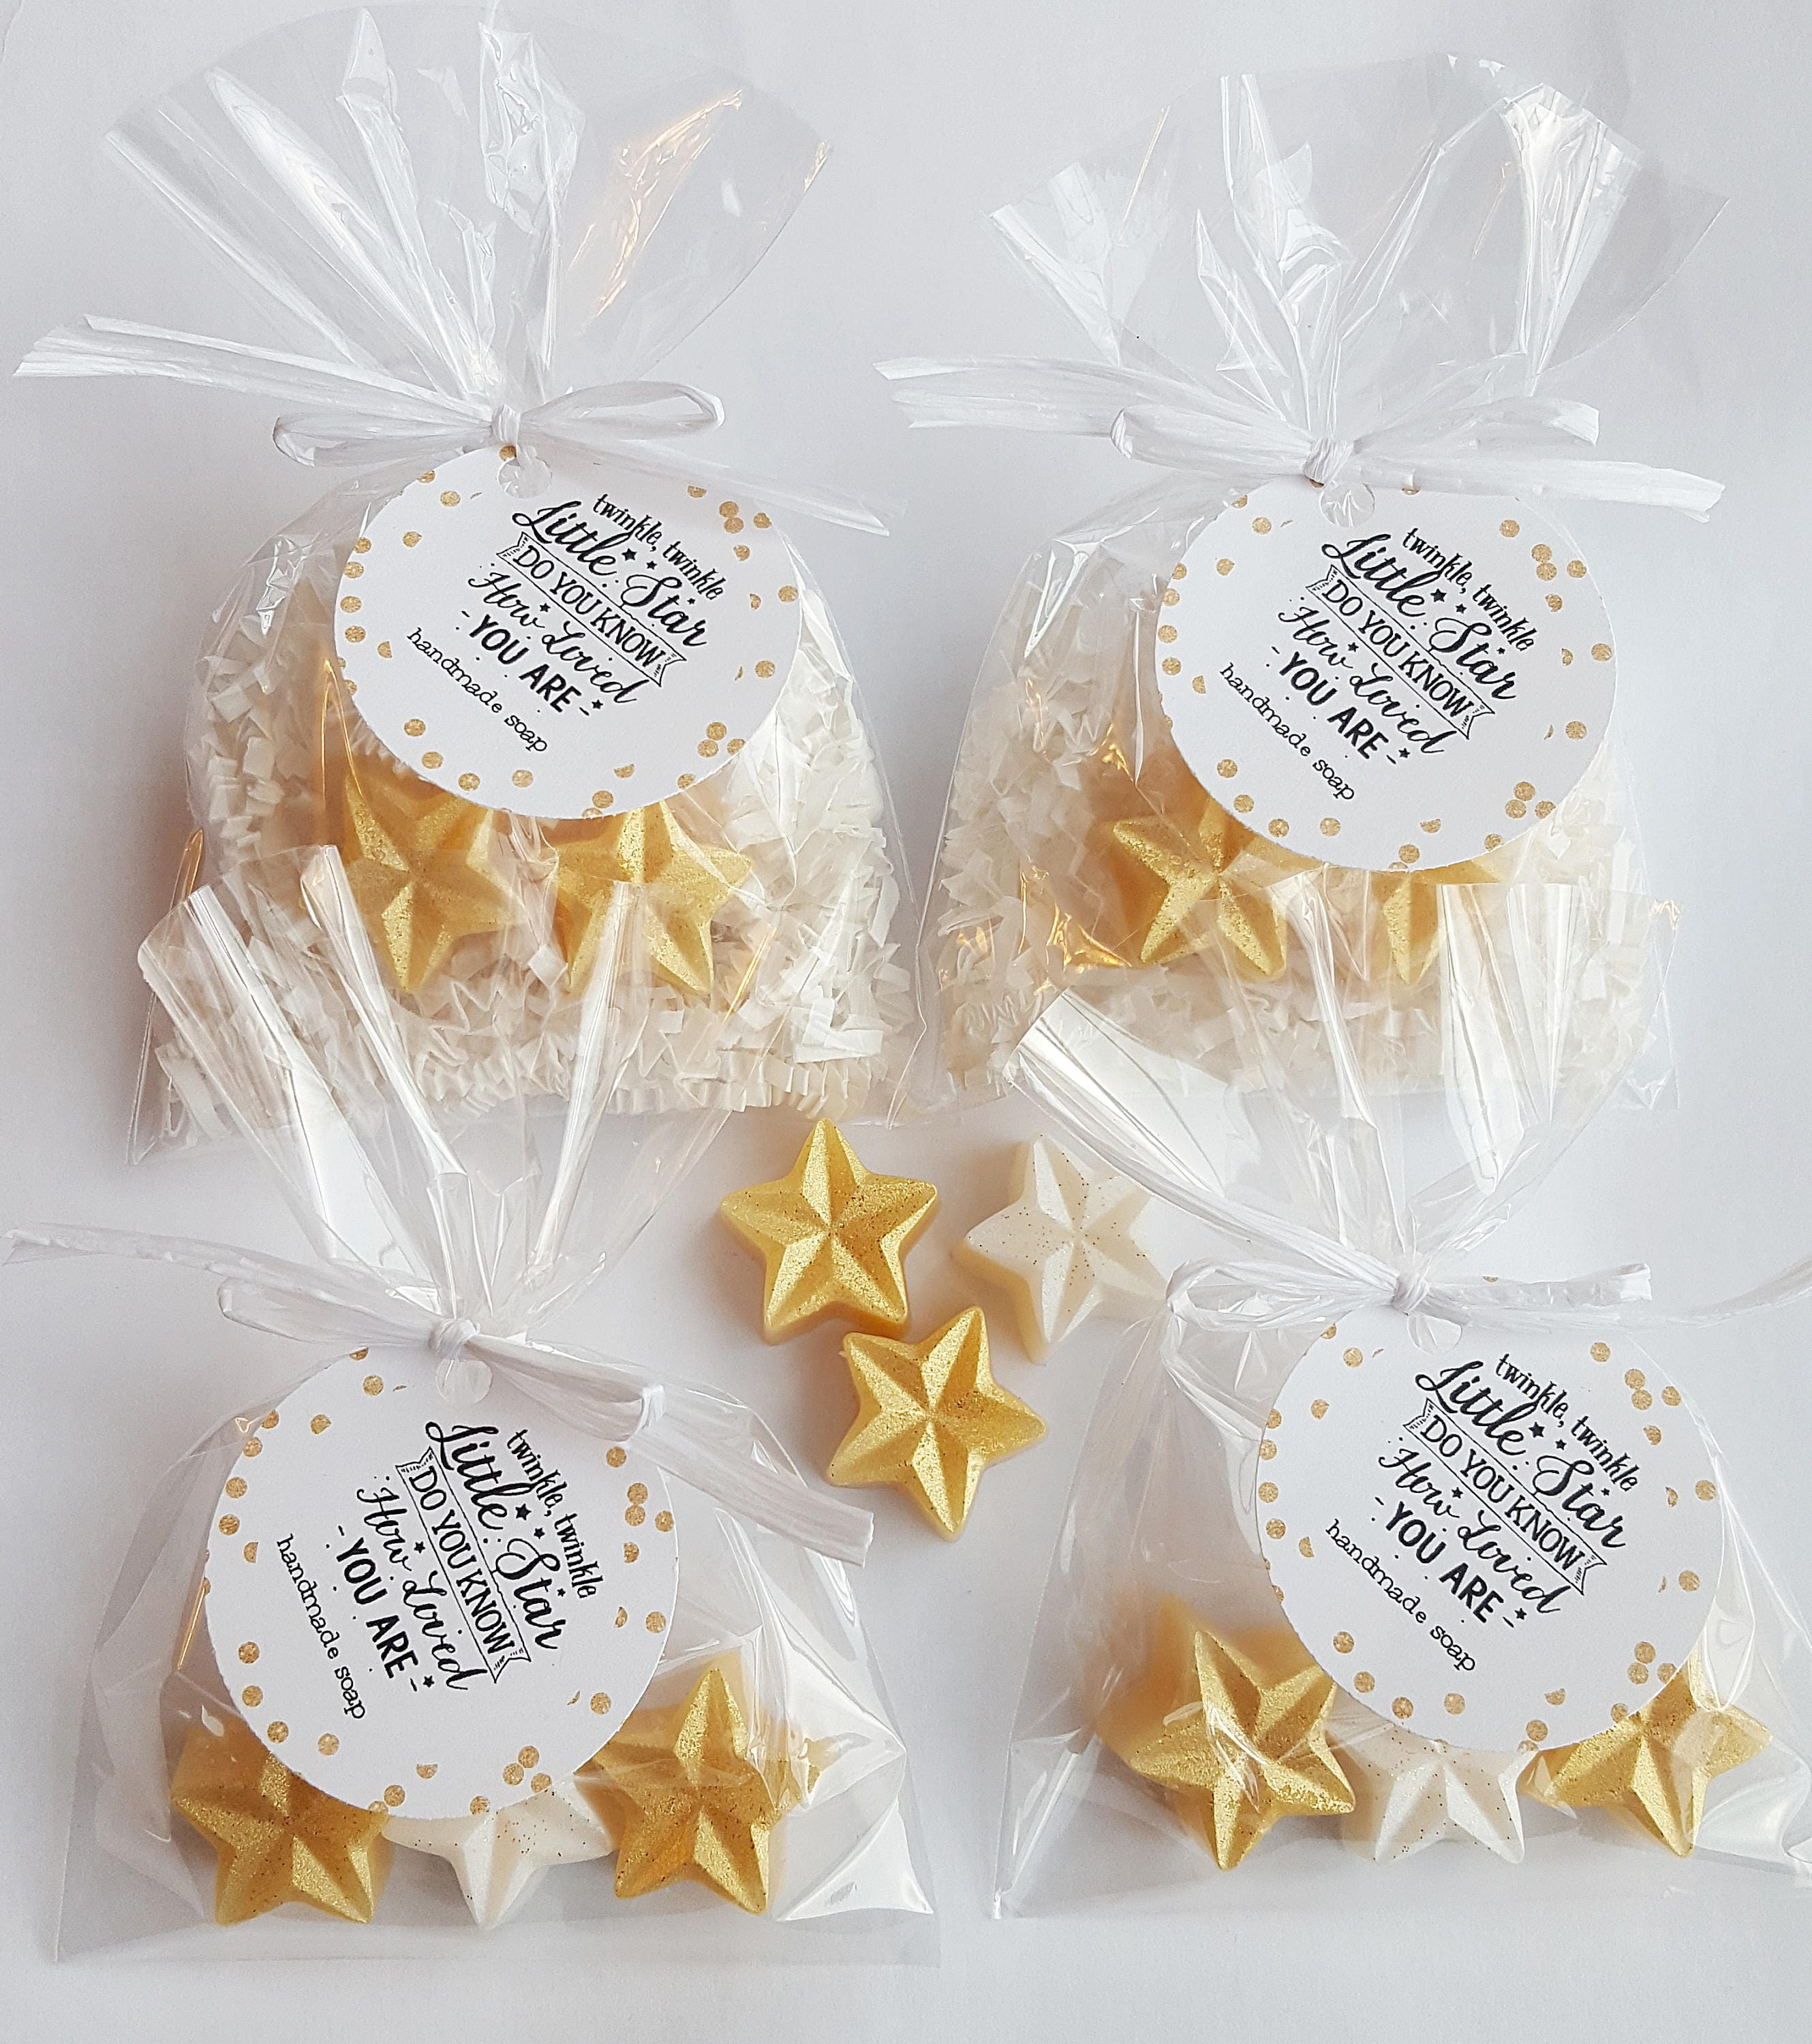 Handmade soap Wedding Favors | Giftwedding.co